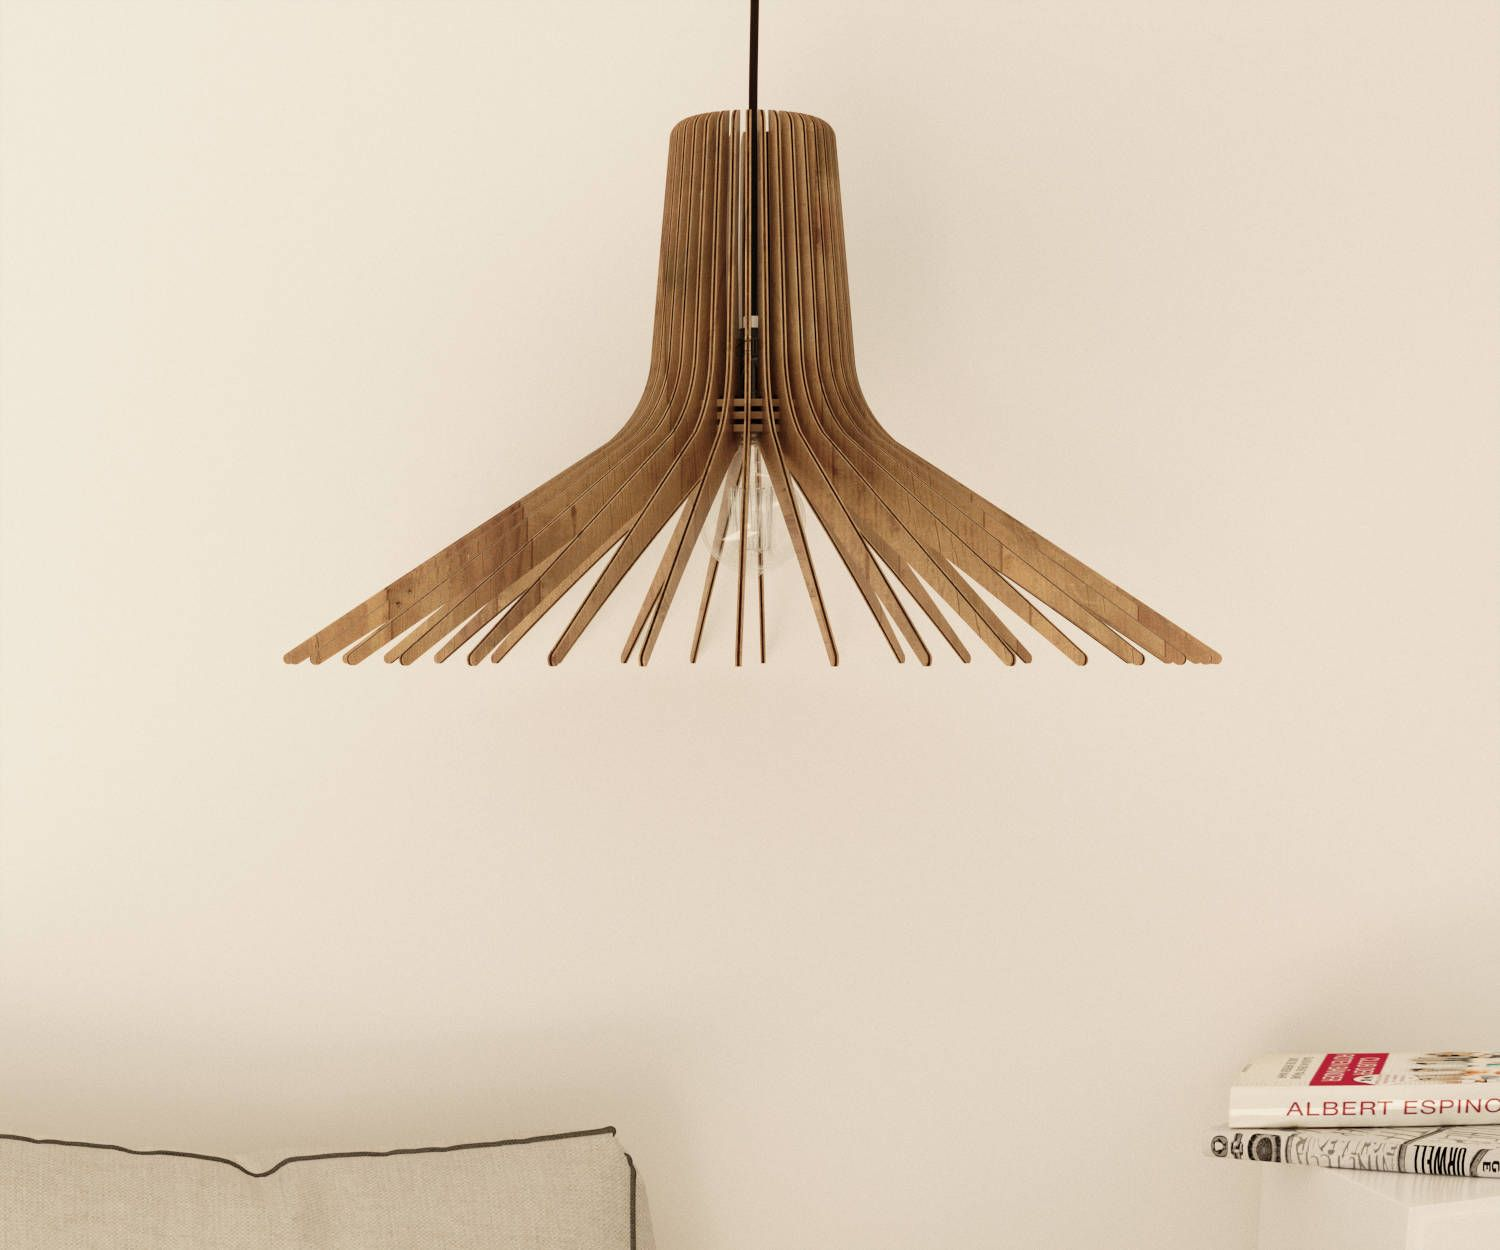 Wood Pendant Light Modern Chandelier Lighting Hanging Dining Lamp Ceiling Light Fixture G Modern Lamp Shades Small Lamp Shades Contemporary Lamp Shades